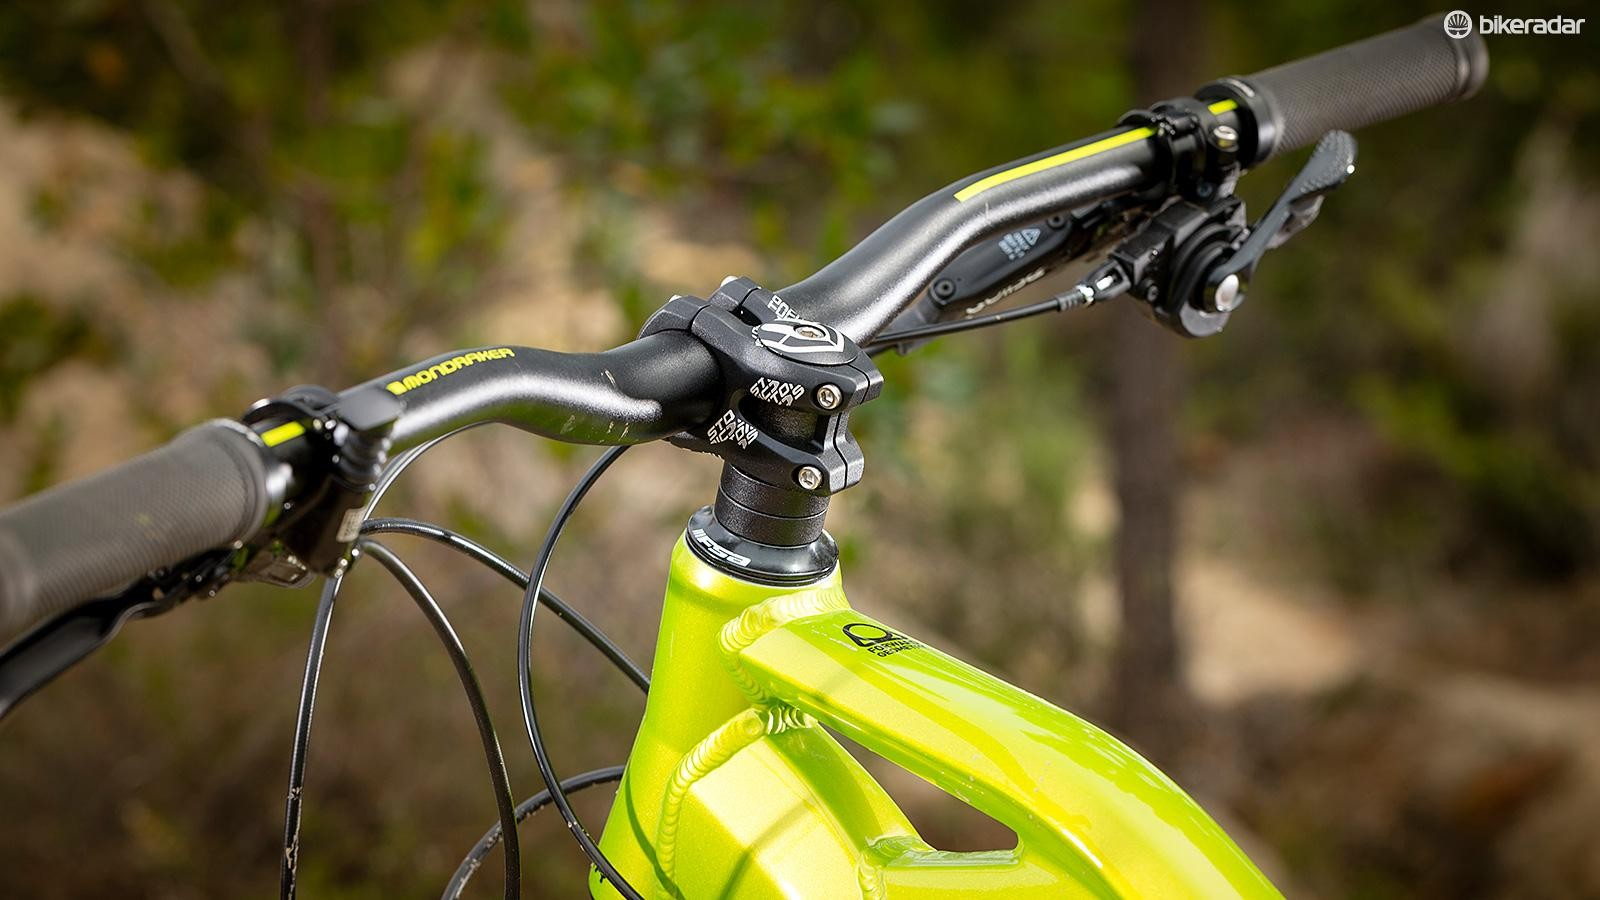 A long frame and a short stem make for comfortable and confident handling